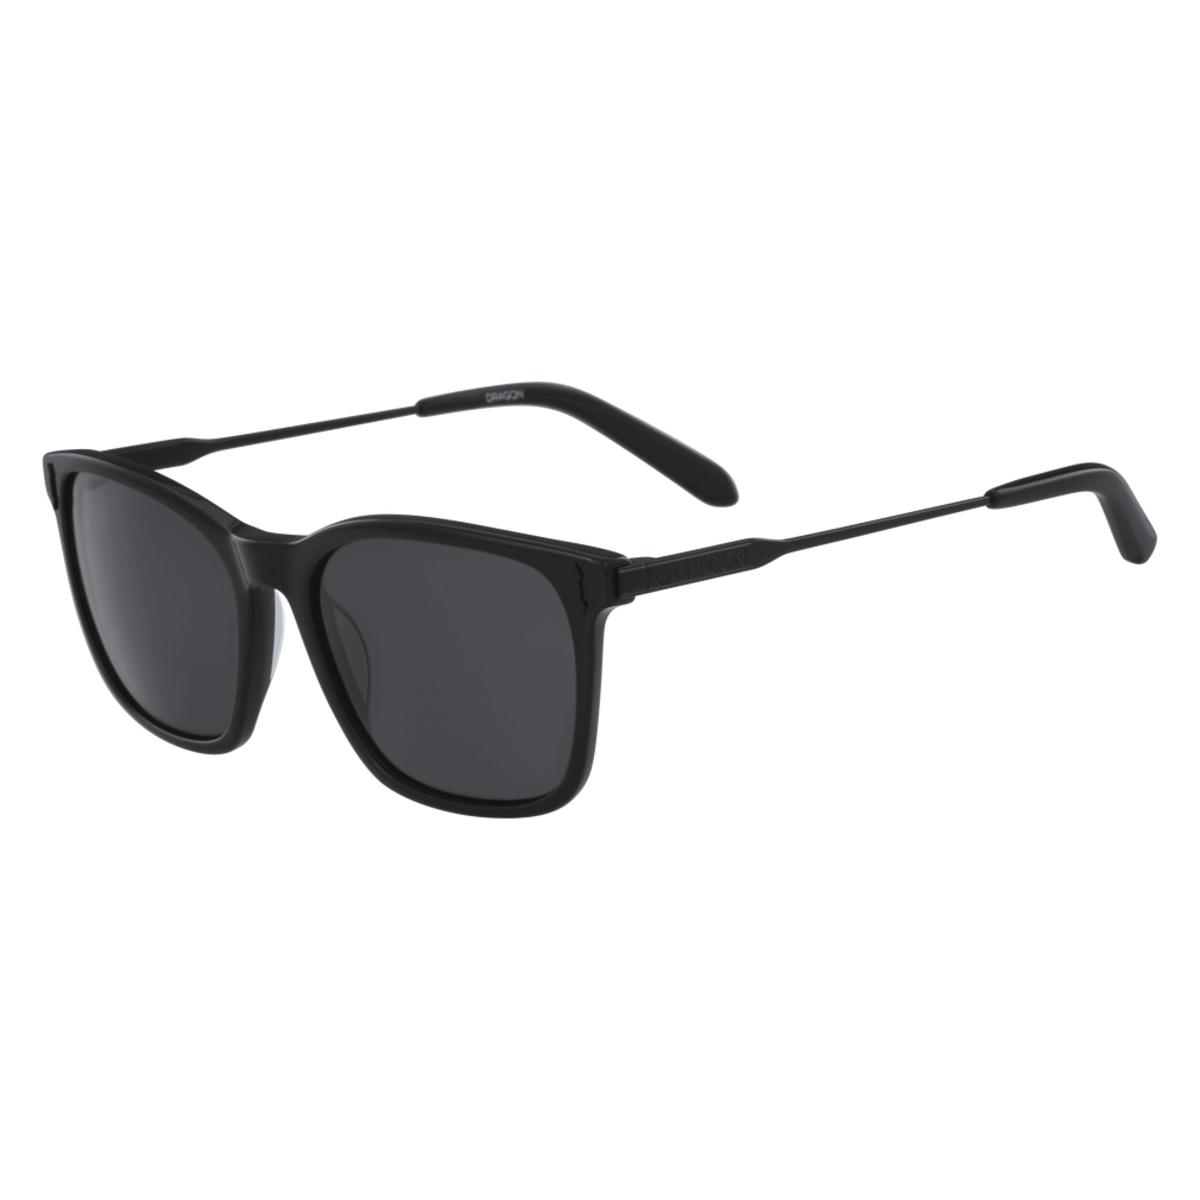 Dragon Jake Sunglasses